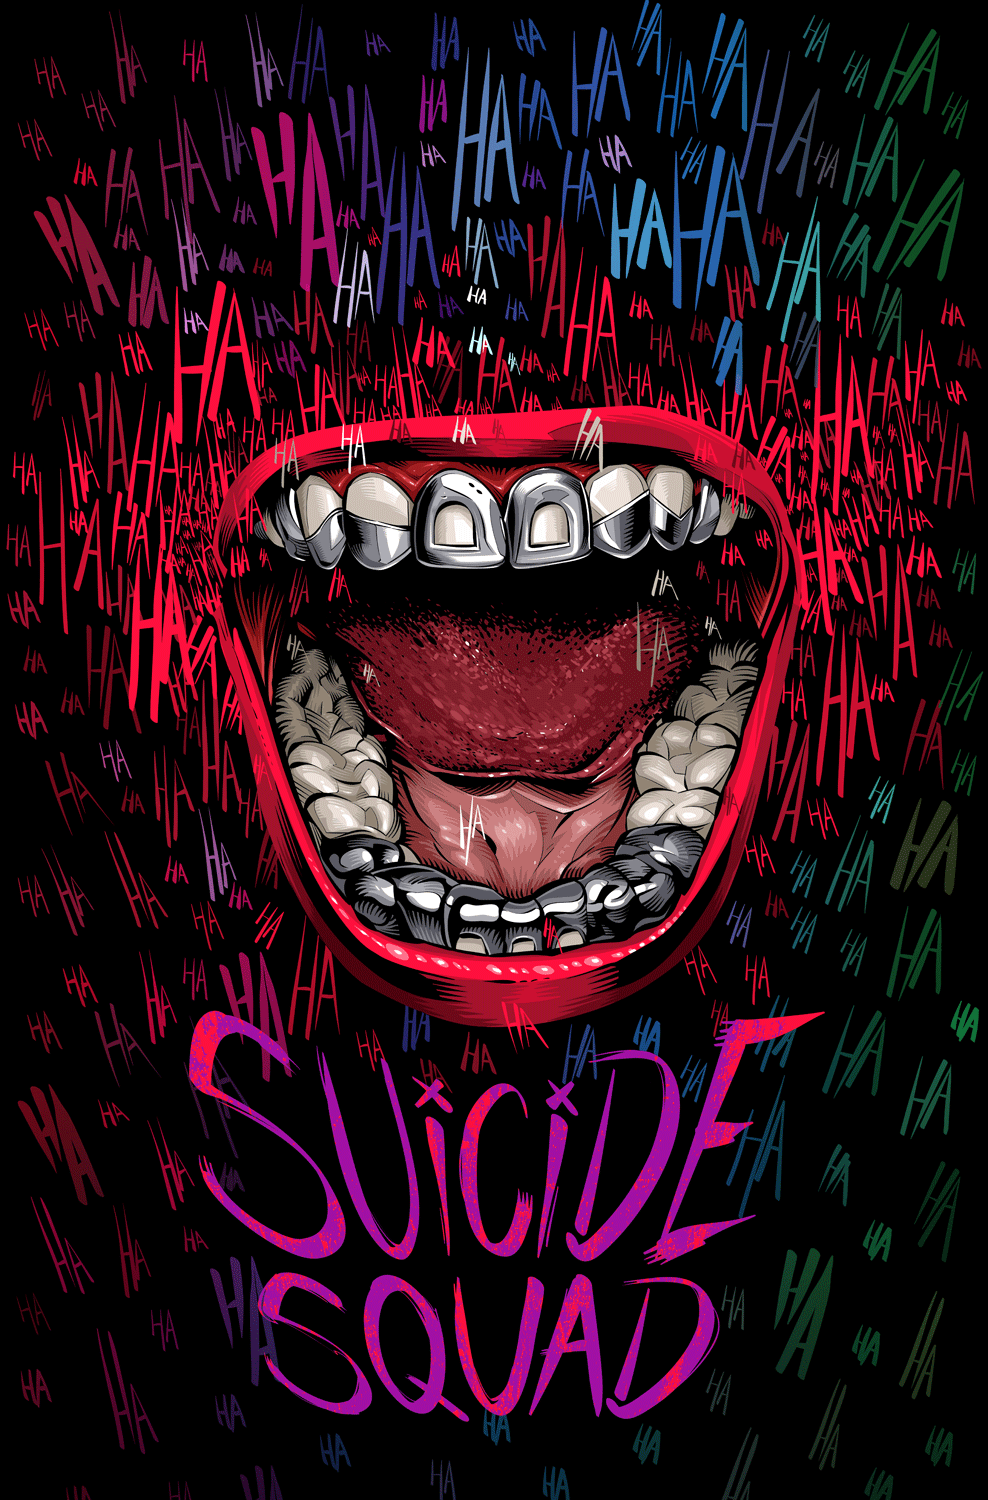 Suicide Squad Poster On Behance